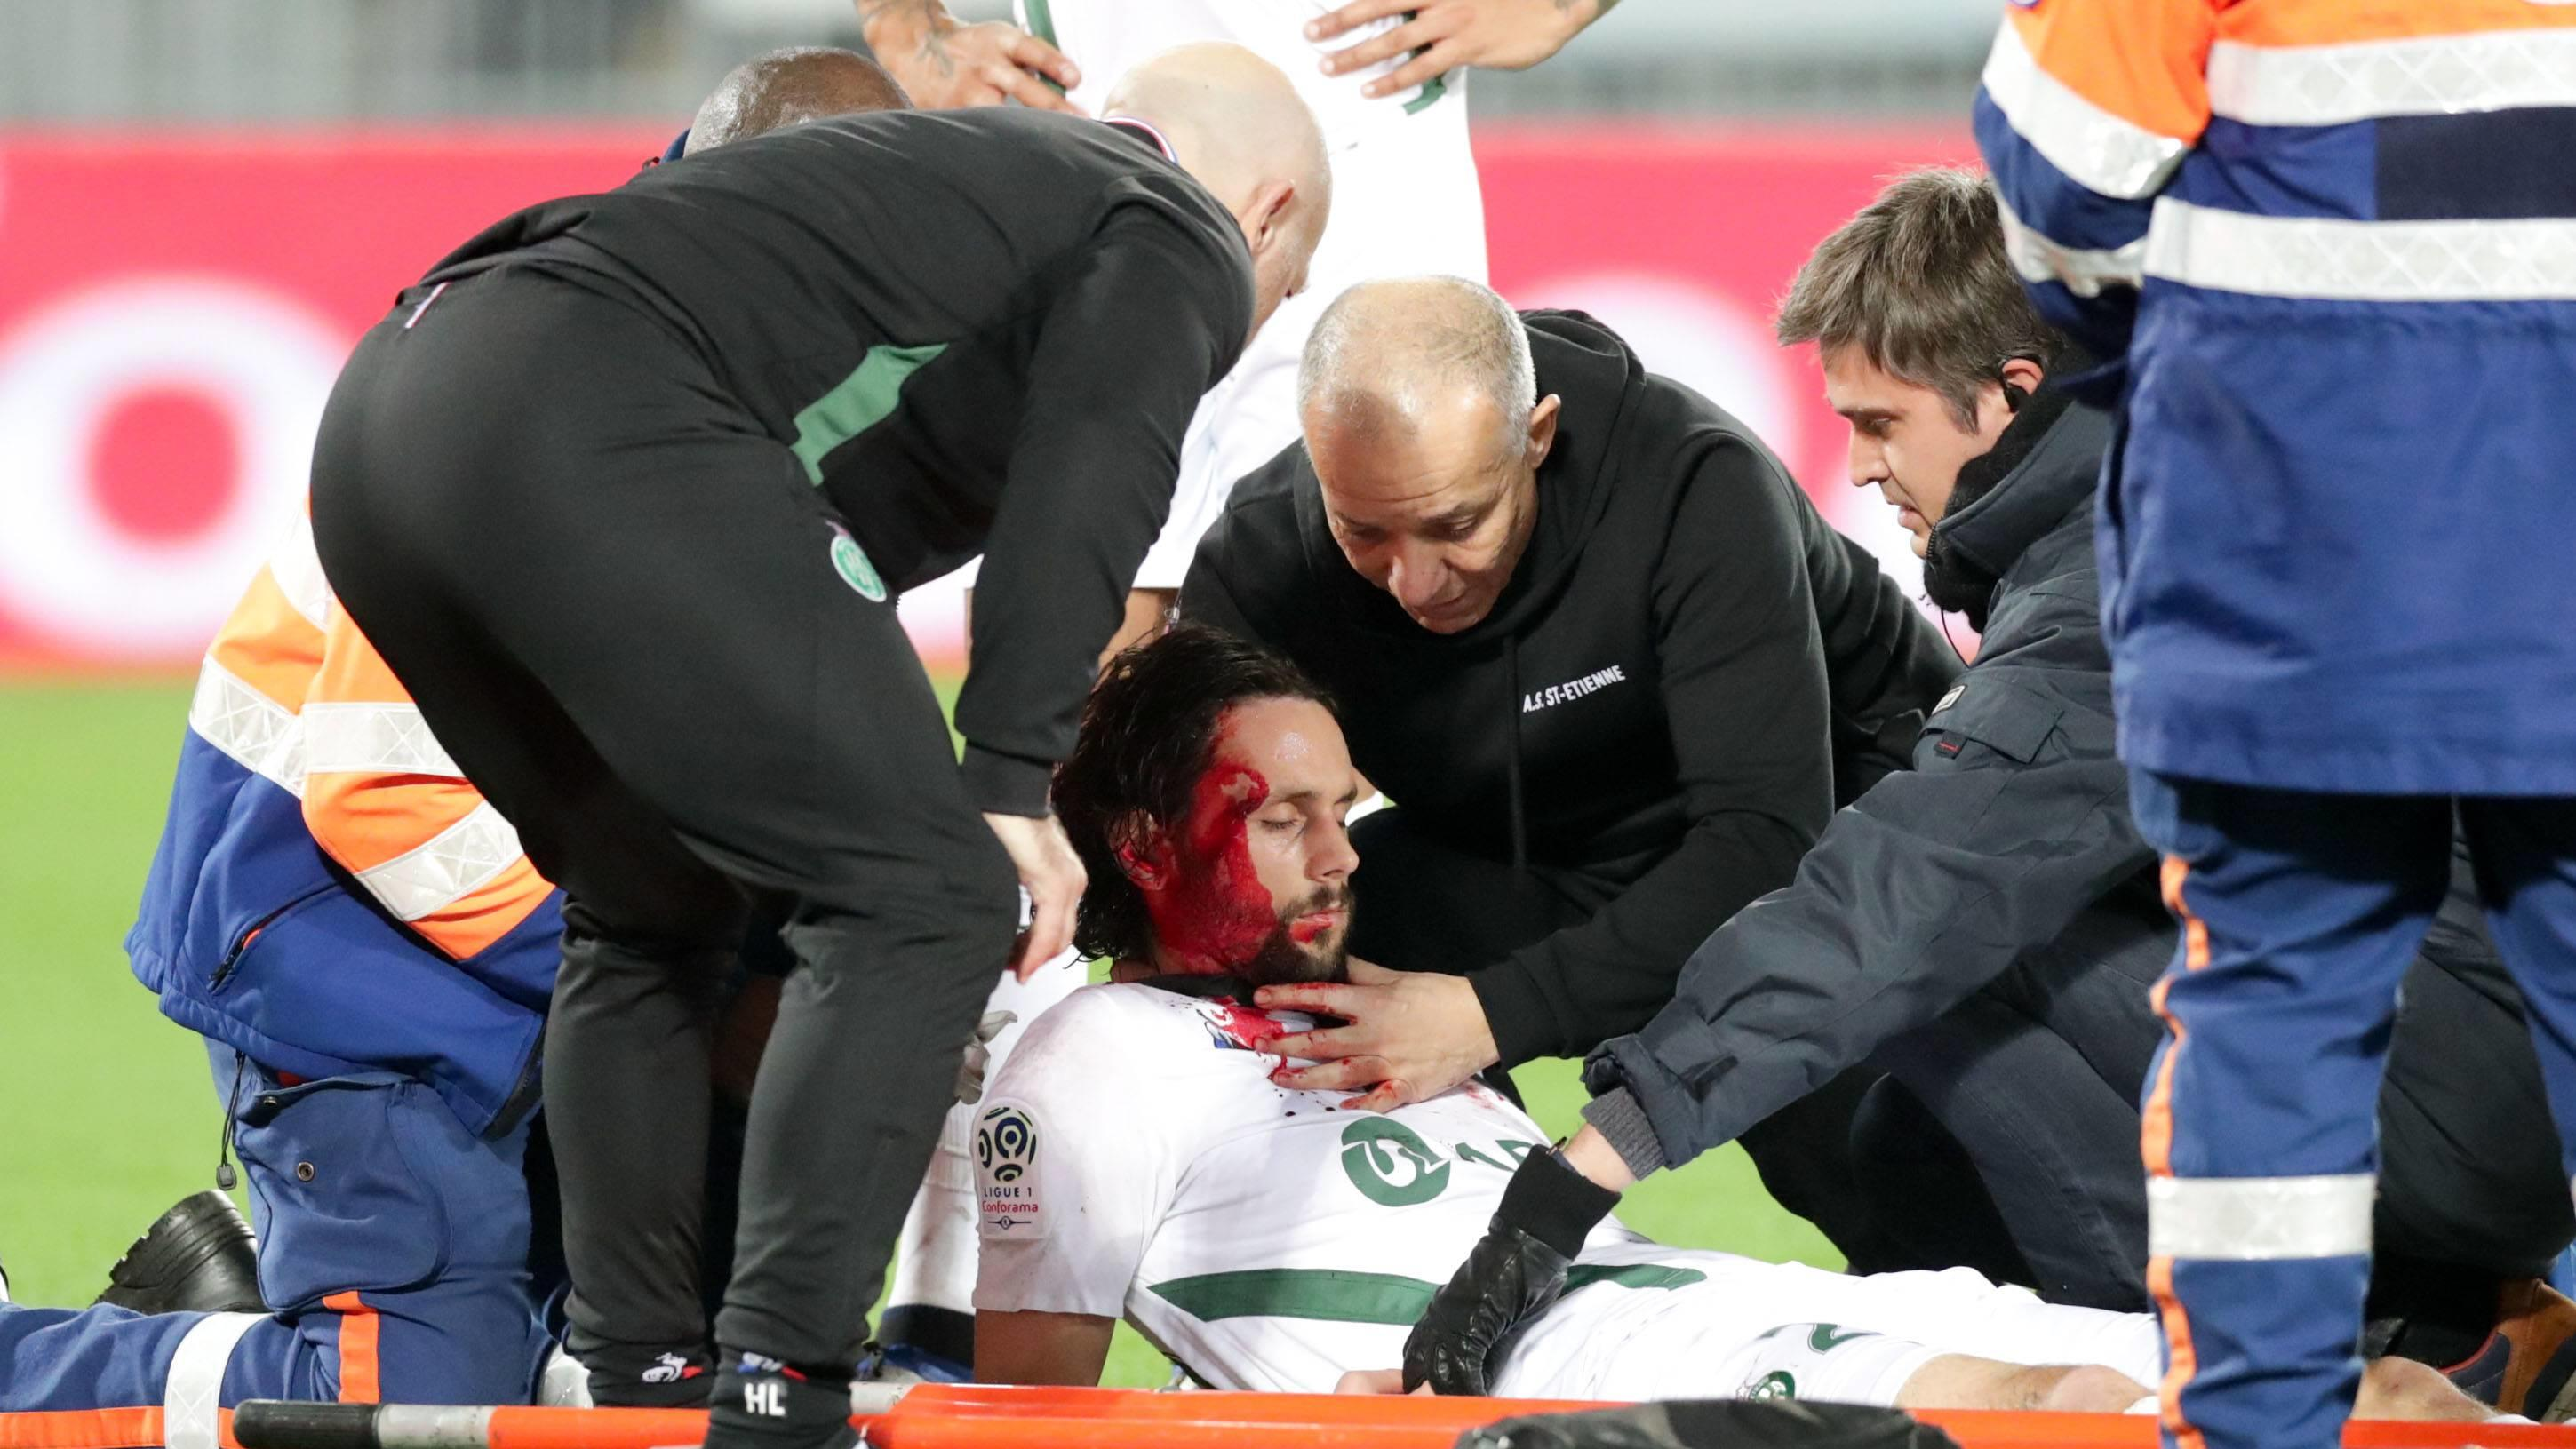 28 NEVEN SUBOTIC (ASSE) - BLESSURE - SANG FOOTBALL : Bordeaux vs Saint Etienne - Ligue 1 Conforama - 05/12/2018 FEP/Panoramic PUBLICATIONxNOTxINxFRAxITAxBEL